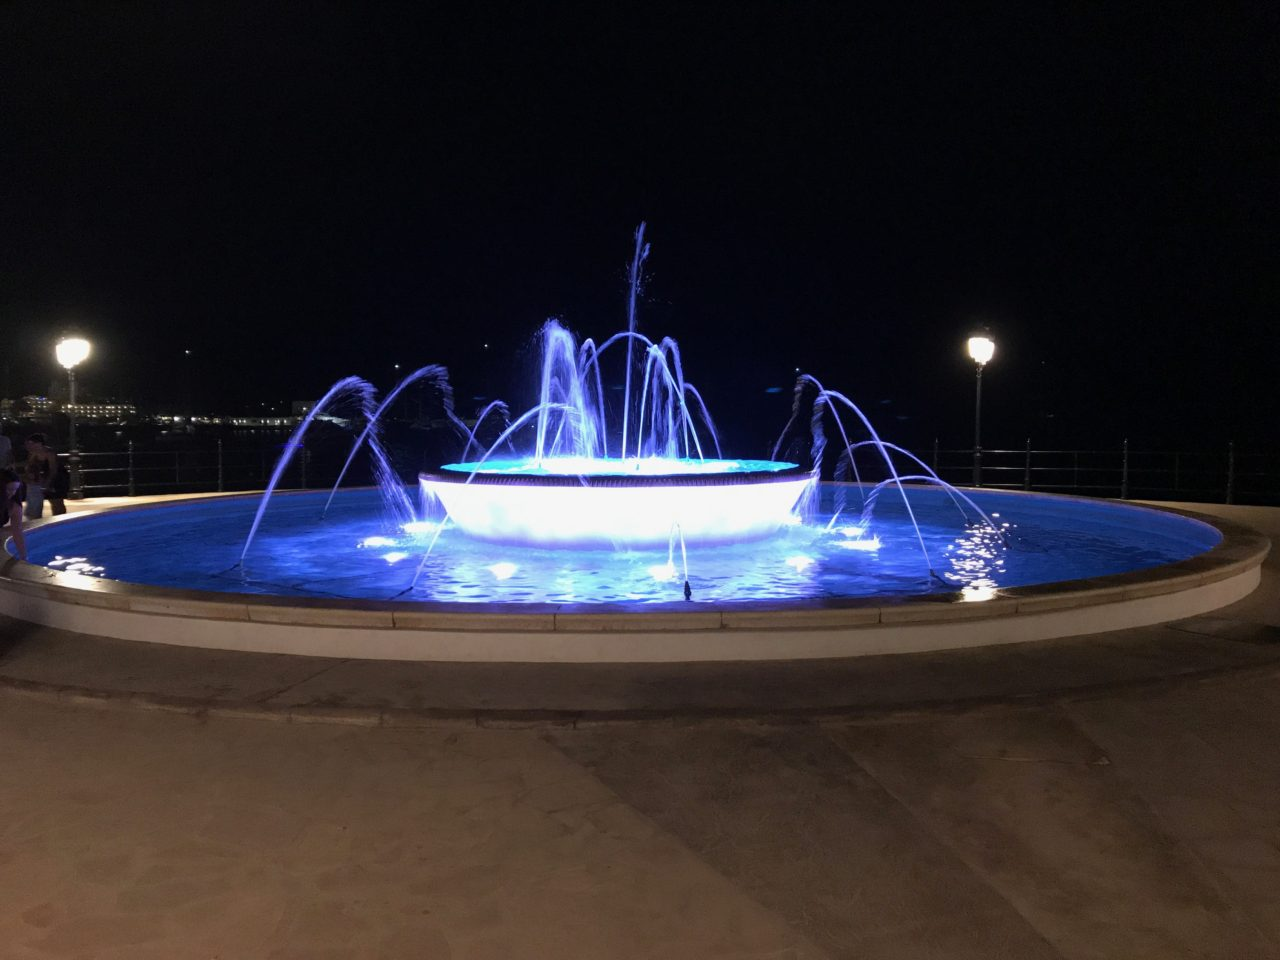 Blue LED Lit Water Fountain At Night